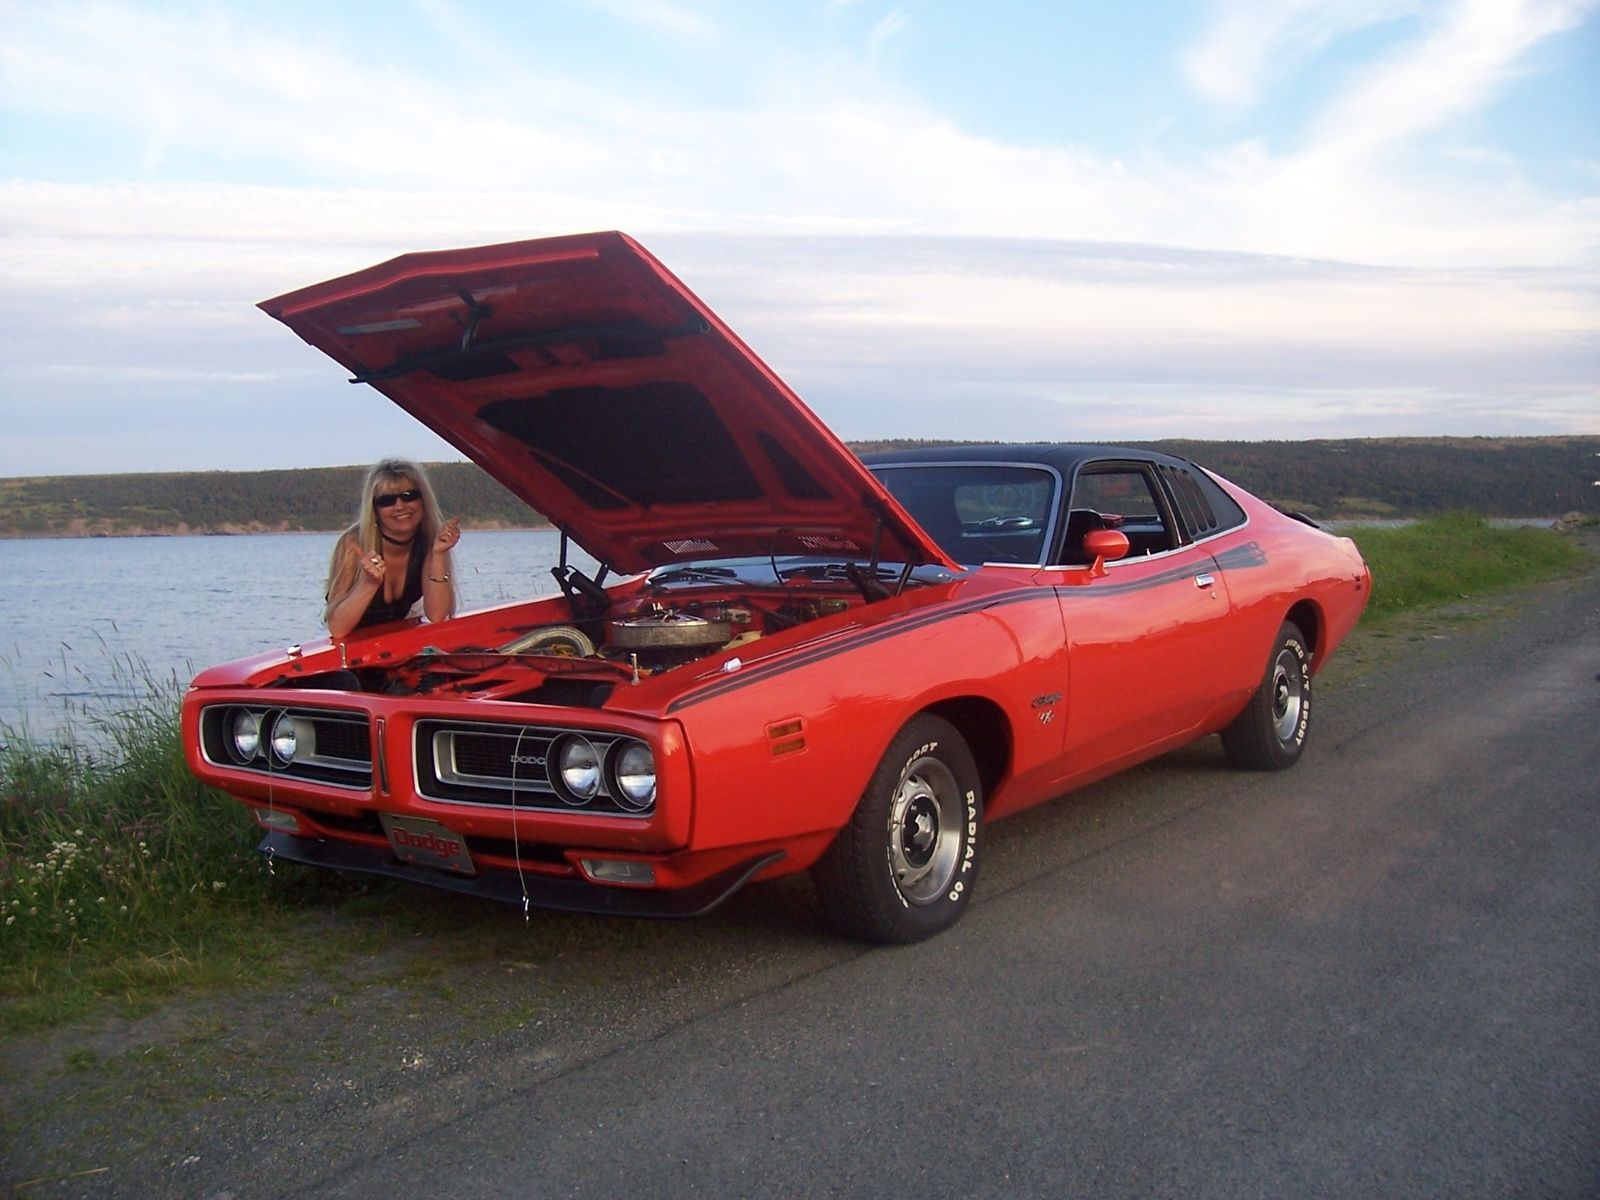 1973 Dodge Charger Pictures Cargurus Dodge Charger Mopar Muscle Cars Chrysler Charger